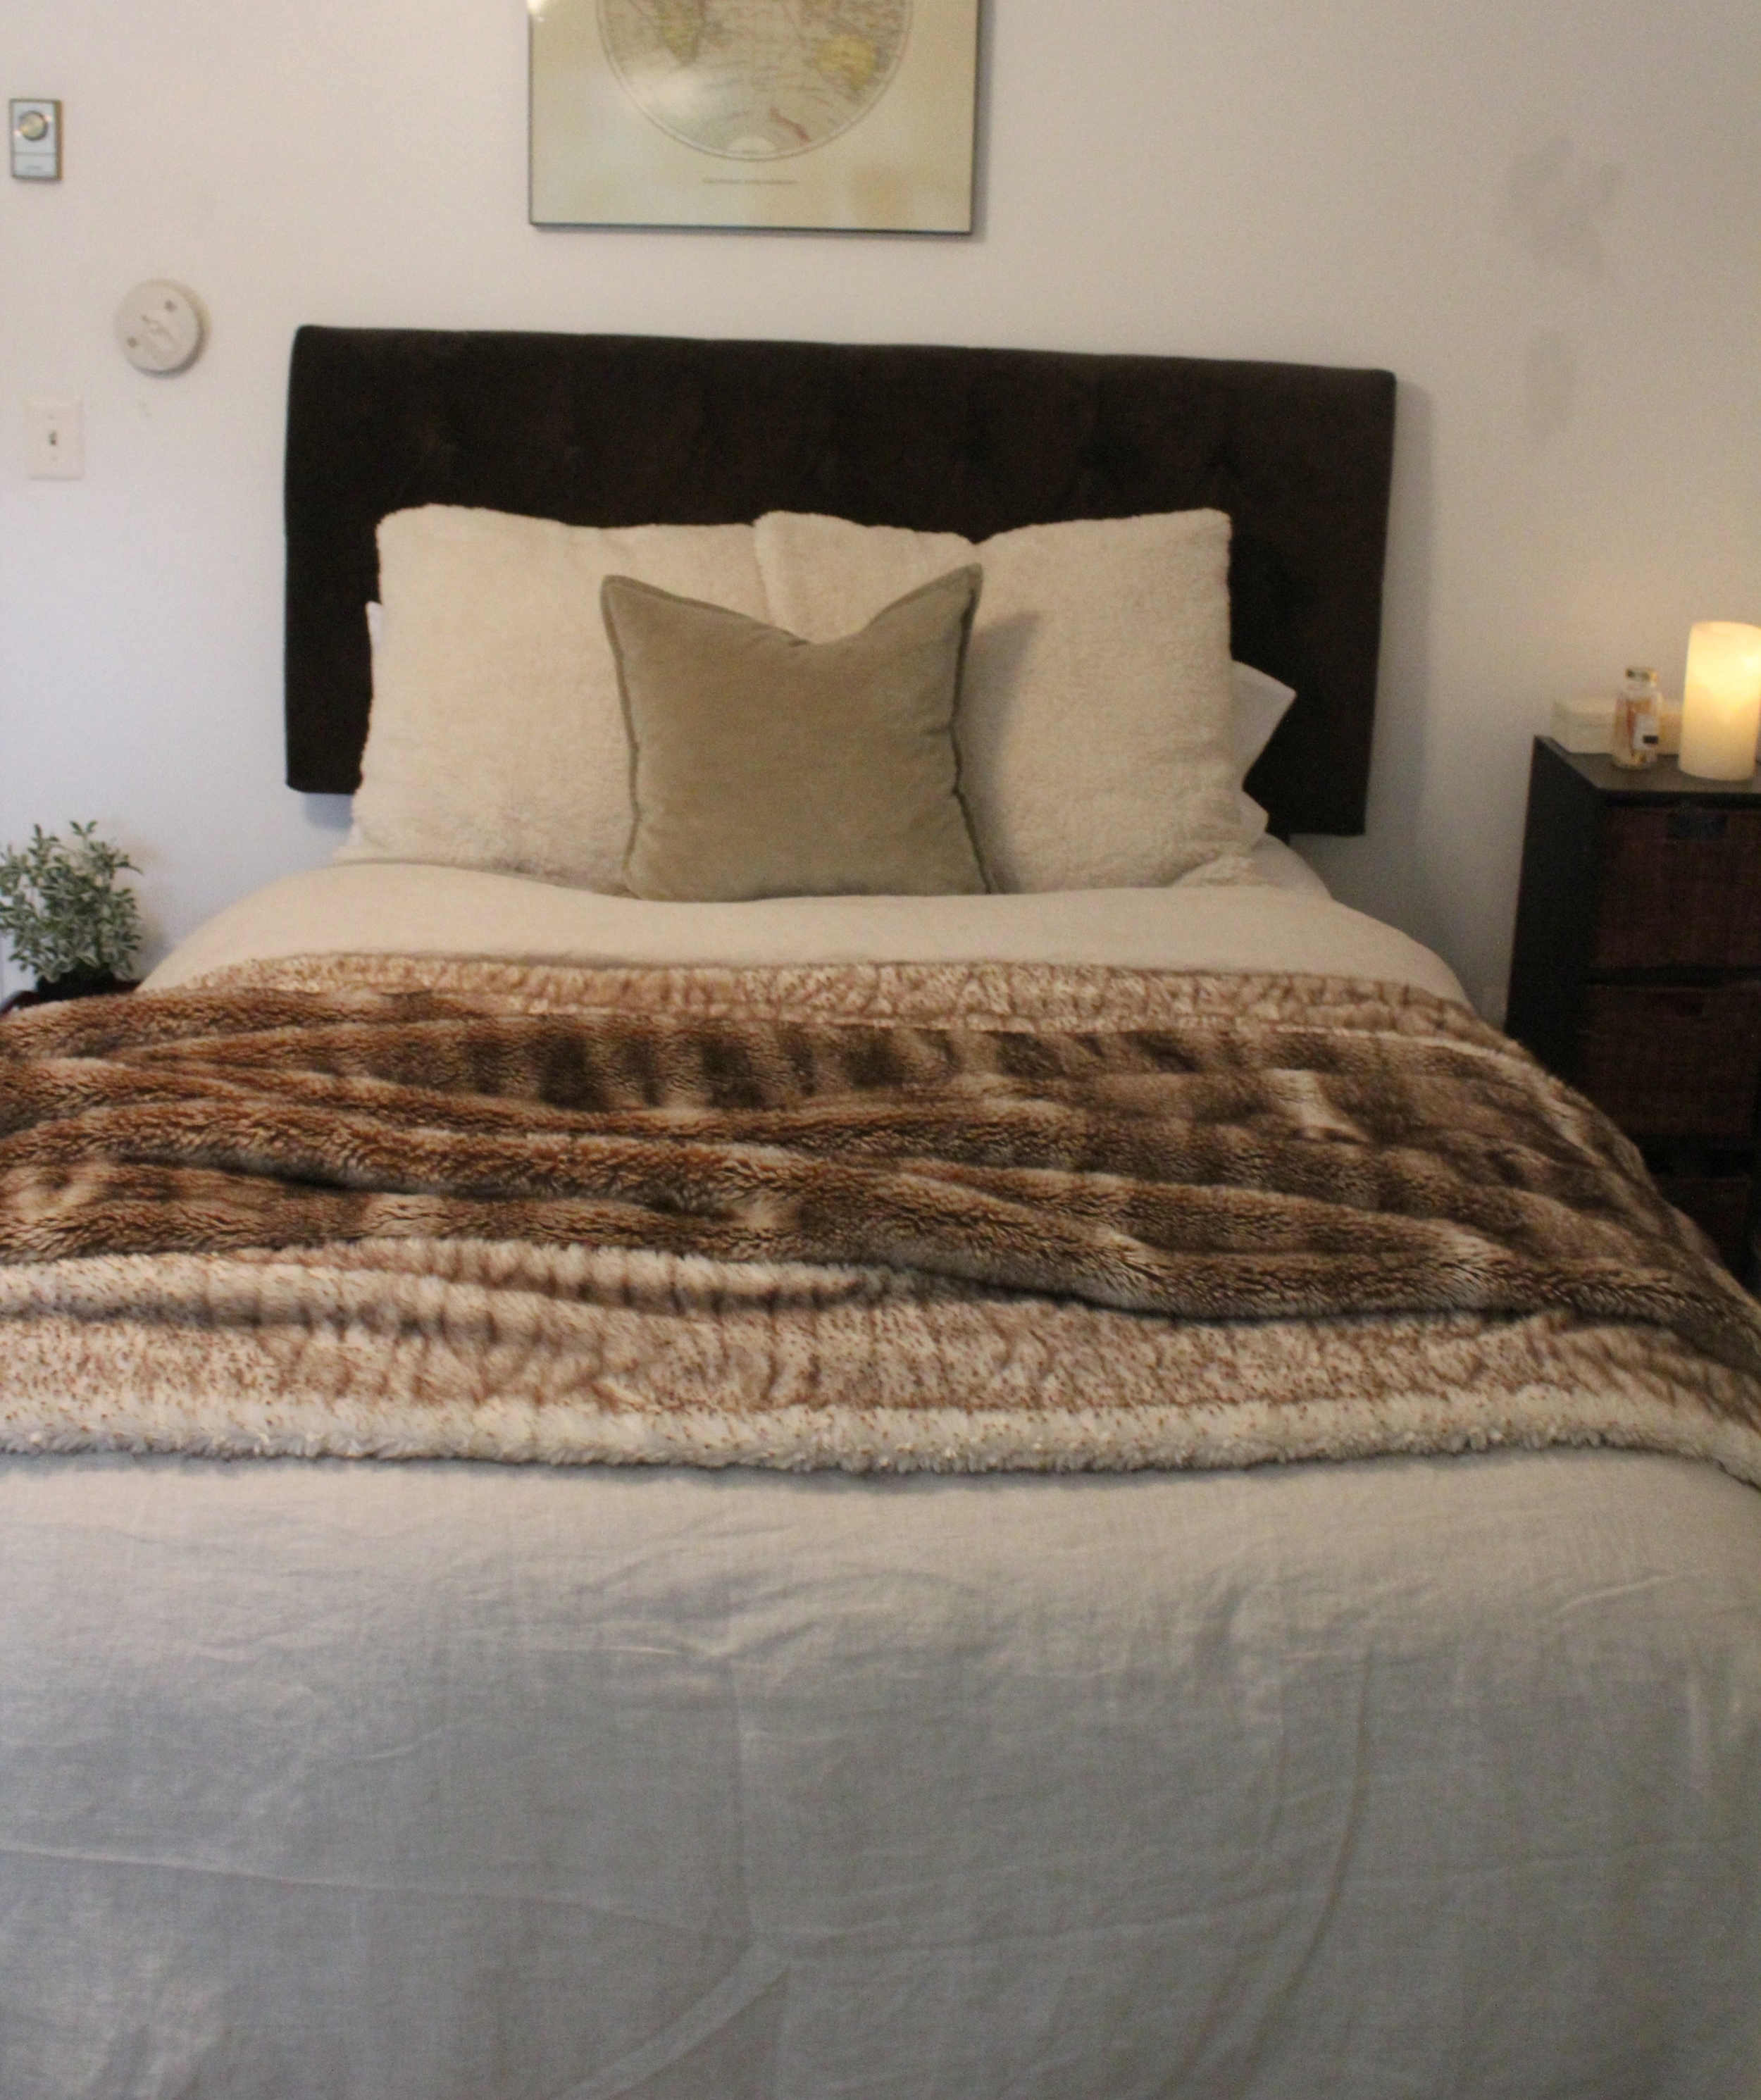 WINTER - For maximum coziness during the coldest months mix in layers of texture with faux furs and velvets.